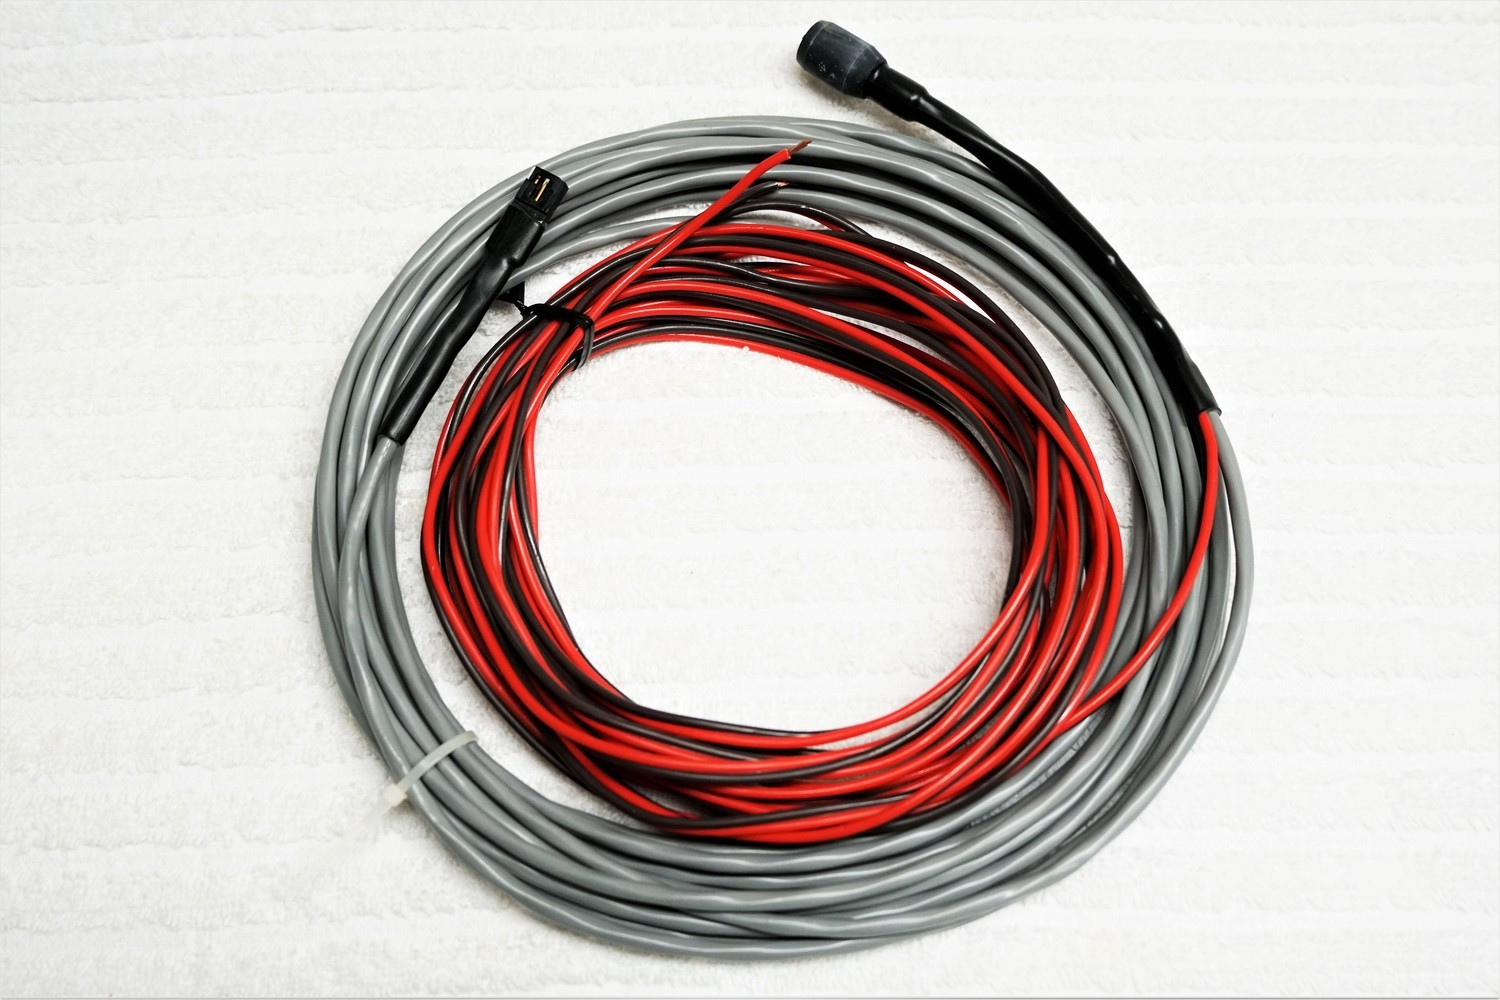 TrollMaster Old Style Wiring Harness